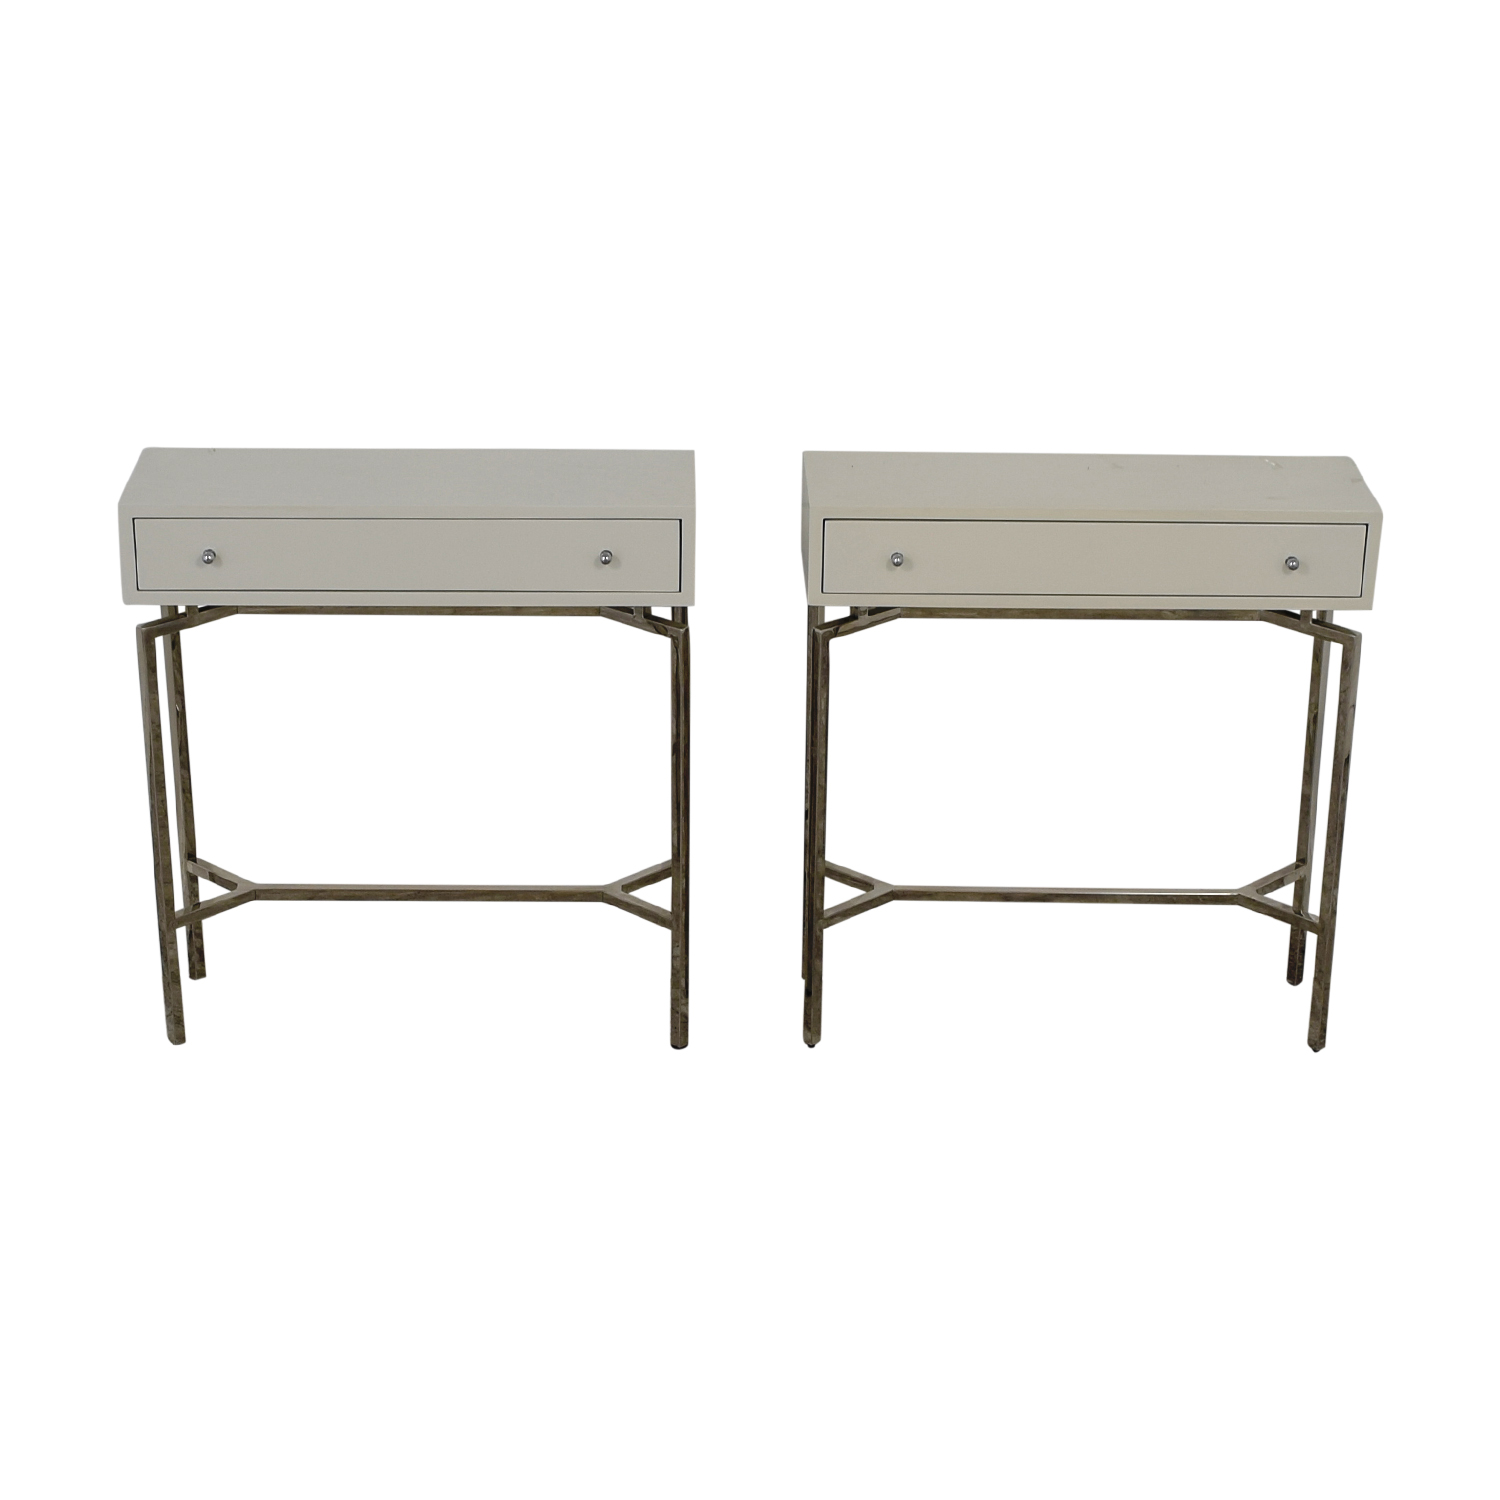 shop Mitchell Gold + Bob Williams Ming Console Tables Mitchell Gold + Bob Williams Sofas